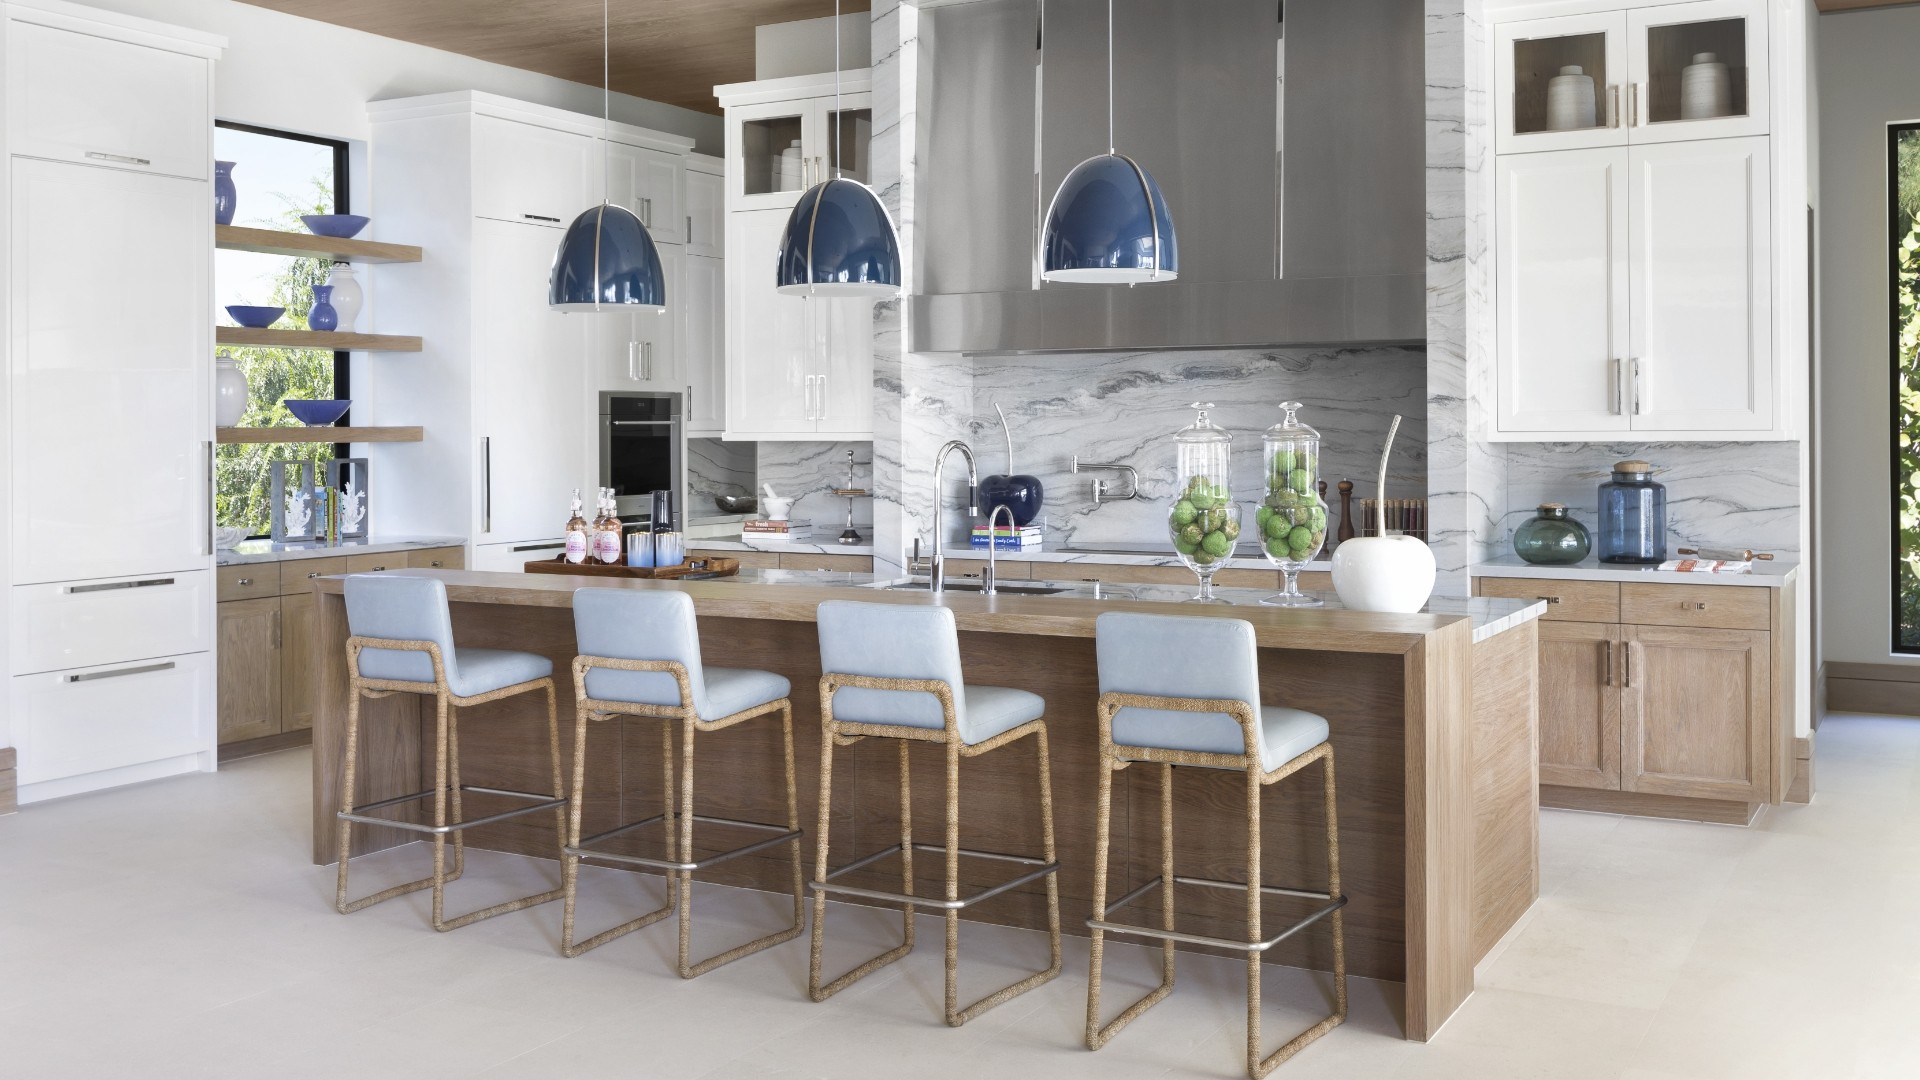 A beautiful Kitchen of a recently designed Marc-Michaels home